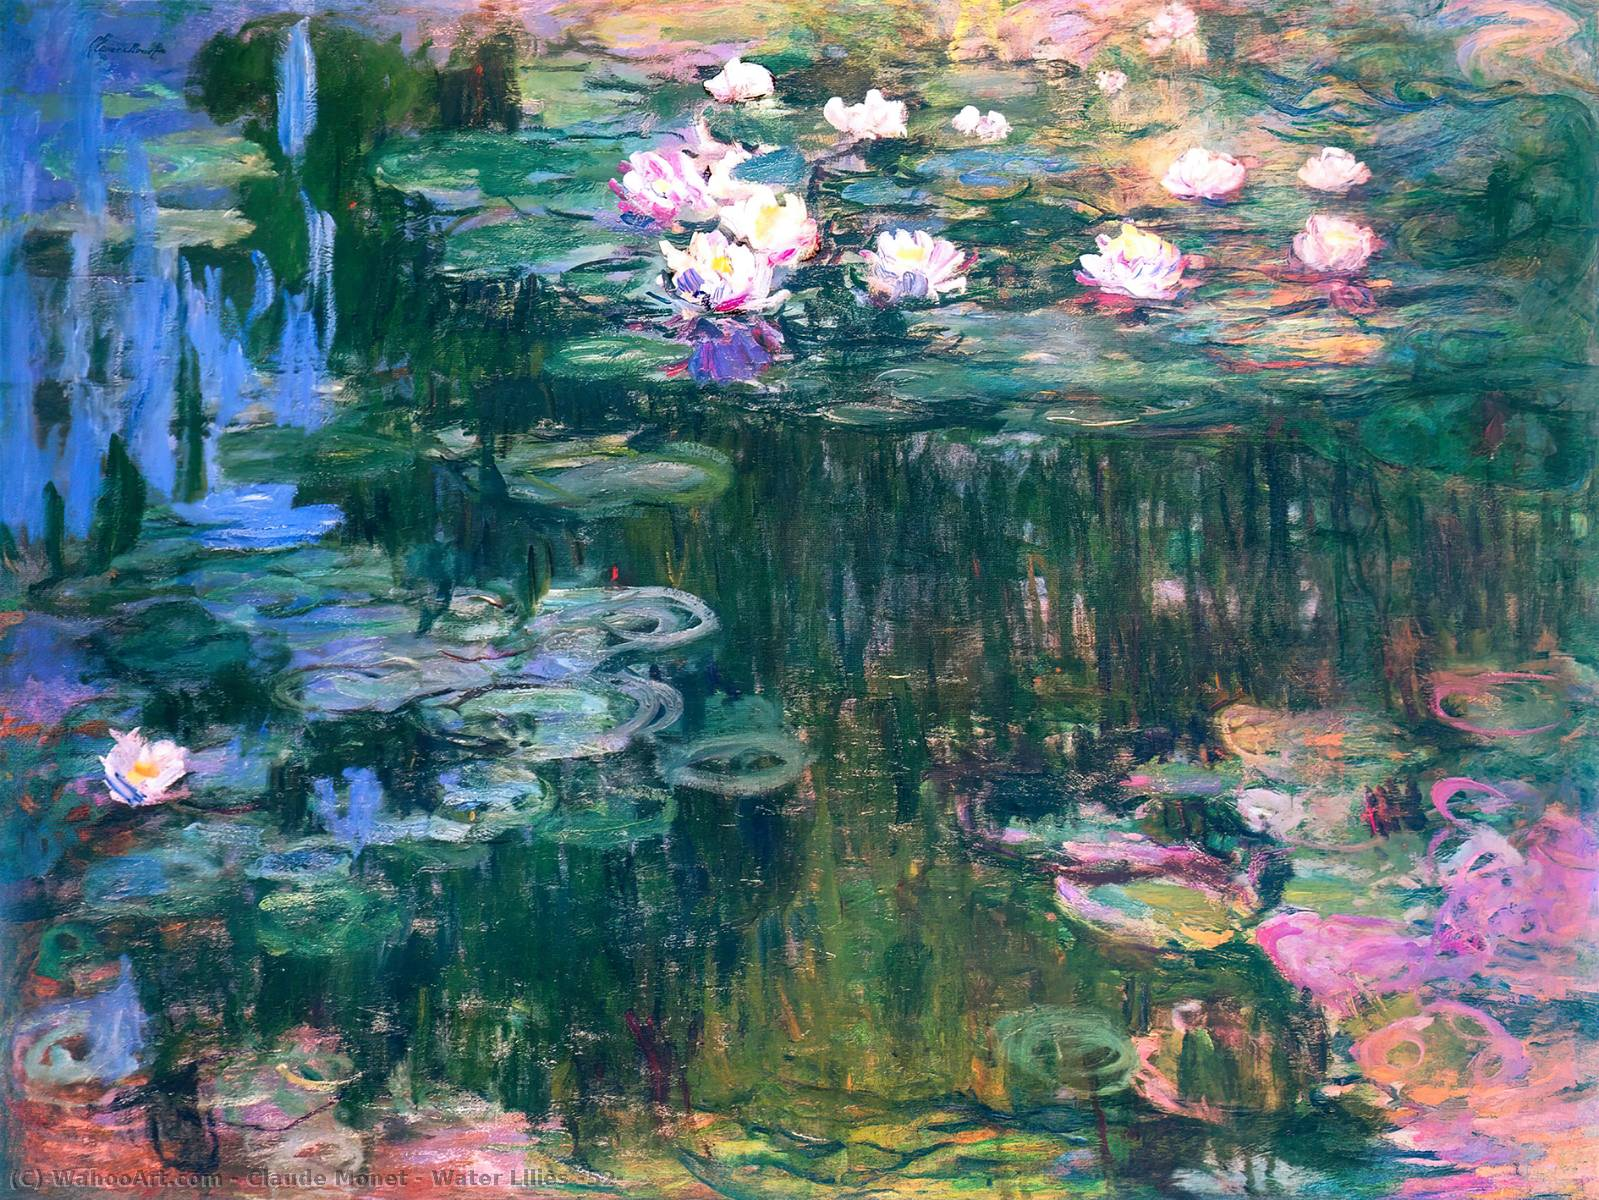 Achat Reproductions De Peintures |  nénuphars 52 de Claude Monet | Most-Famous-Paintings.com